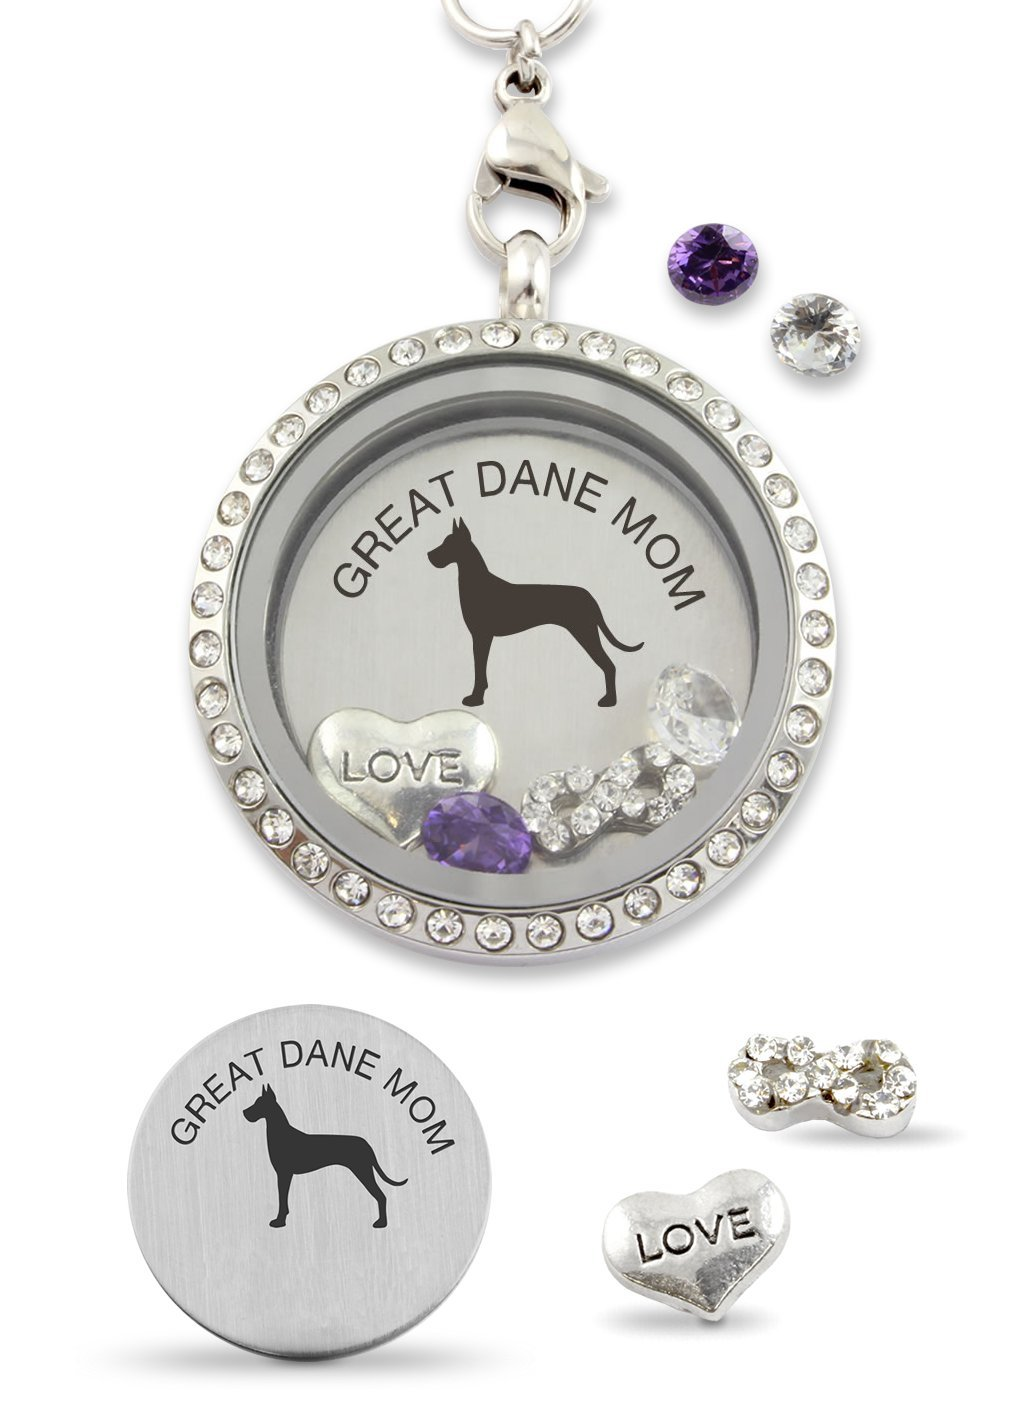 Great Dane Mom Infinity Love Dog Floating Charm Living Memory Locket Magnetic Closure 30mm Stainless Steel Pendant Necklace